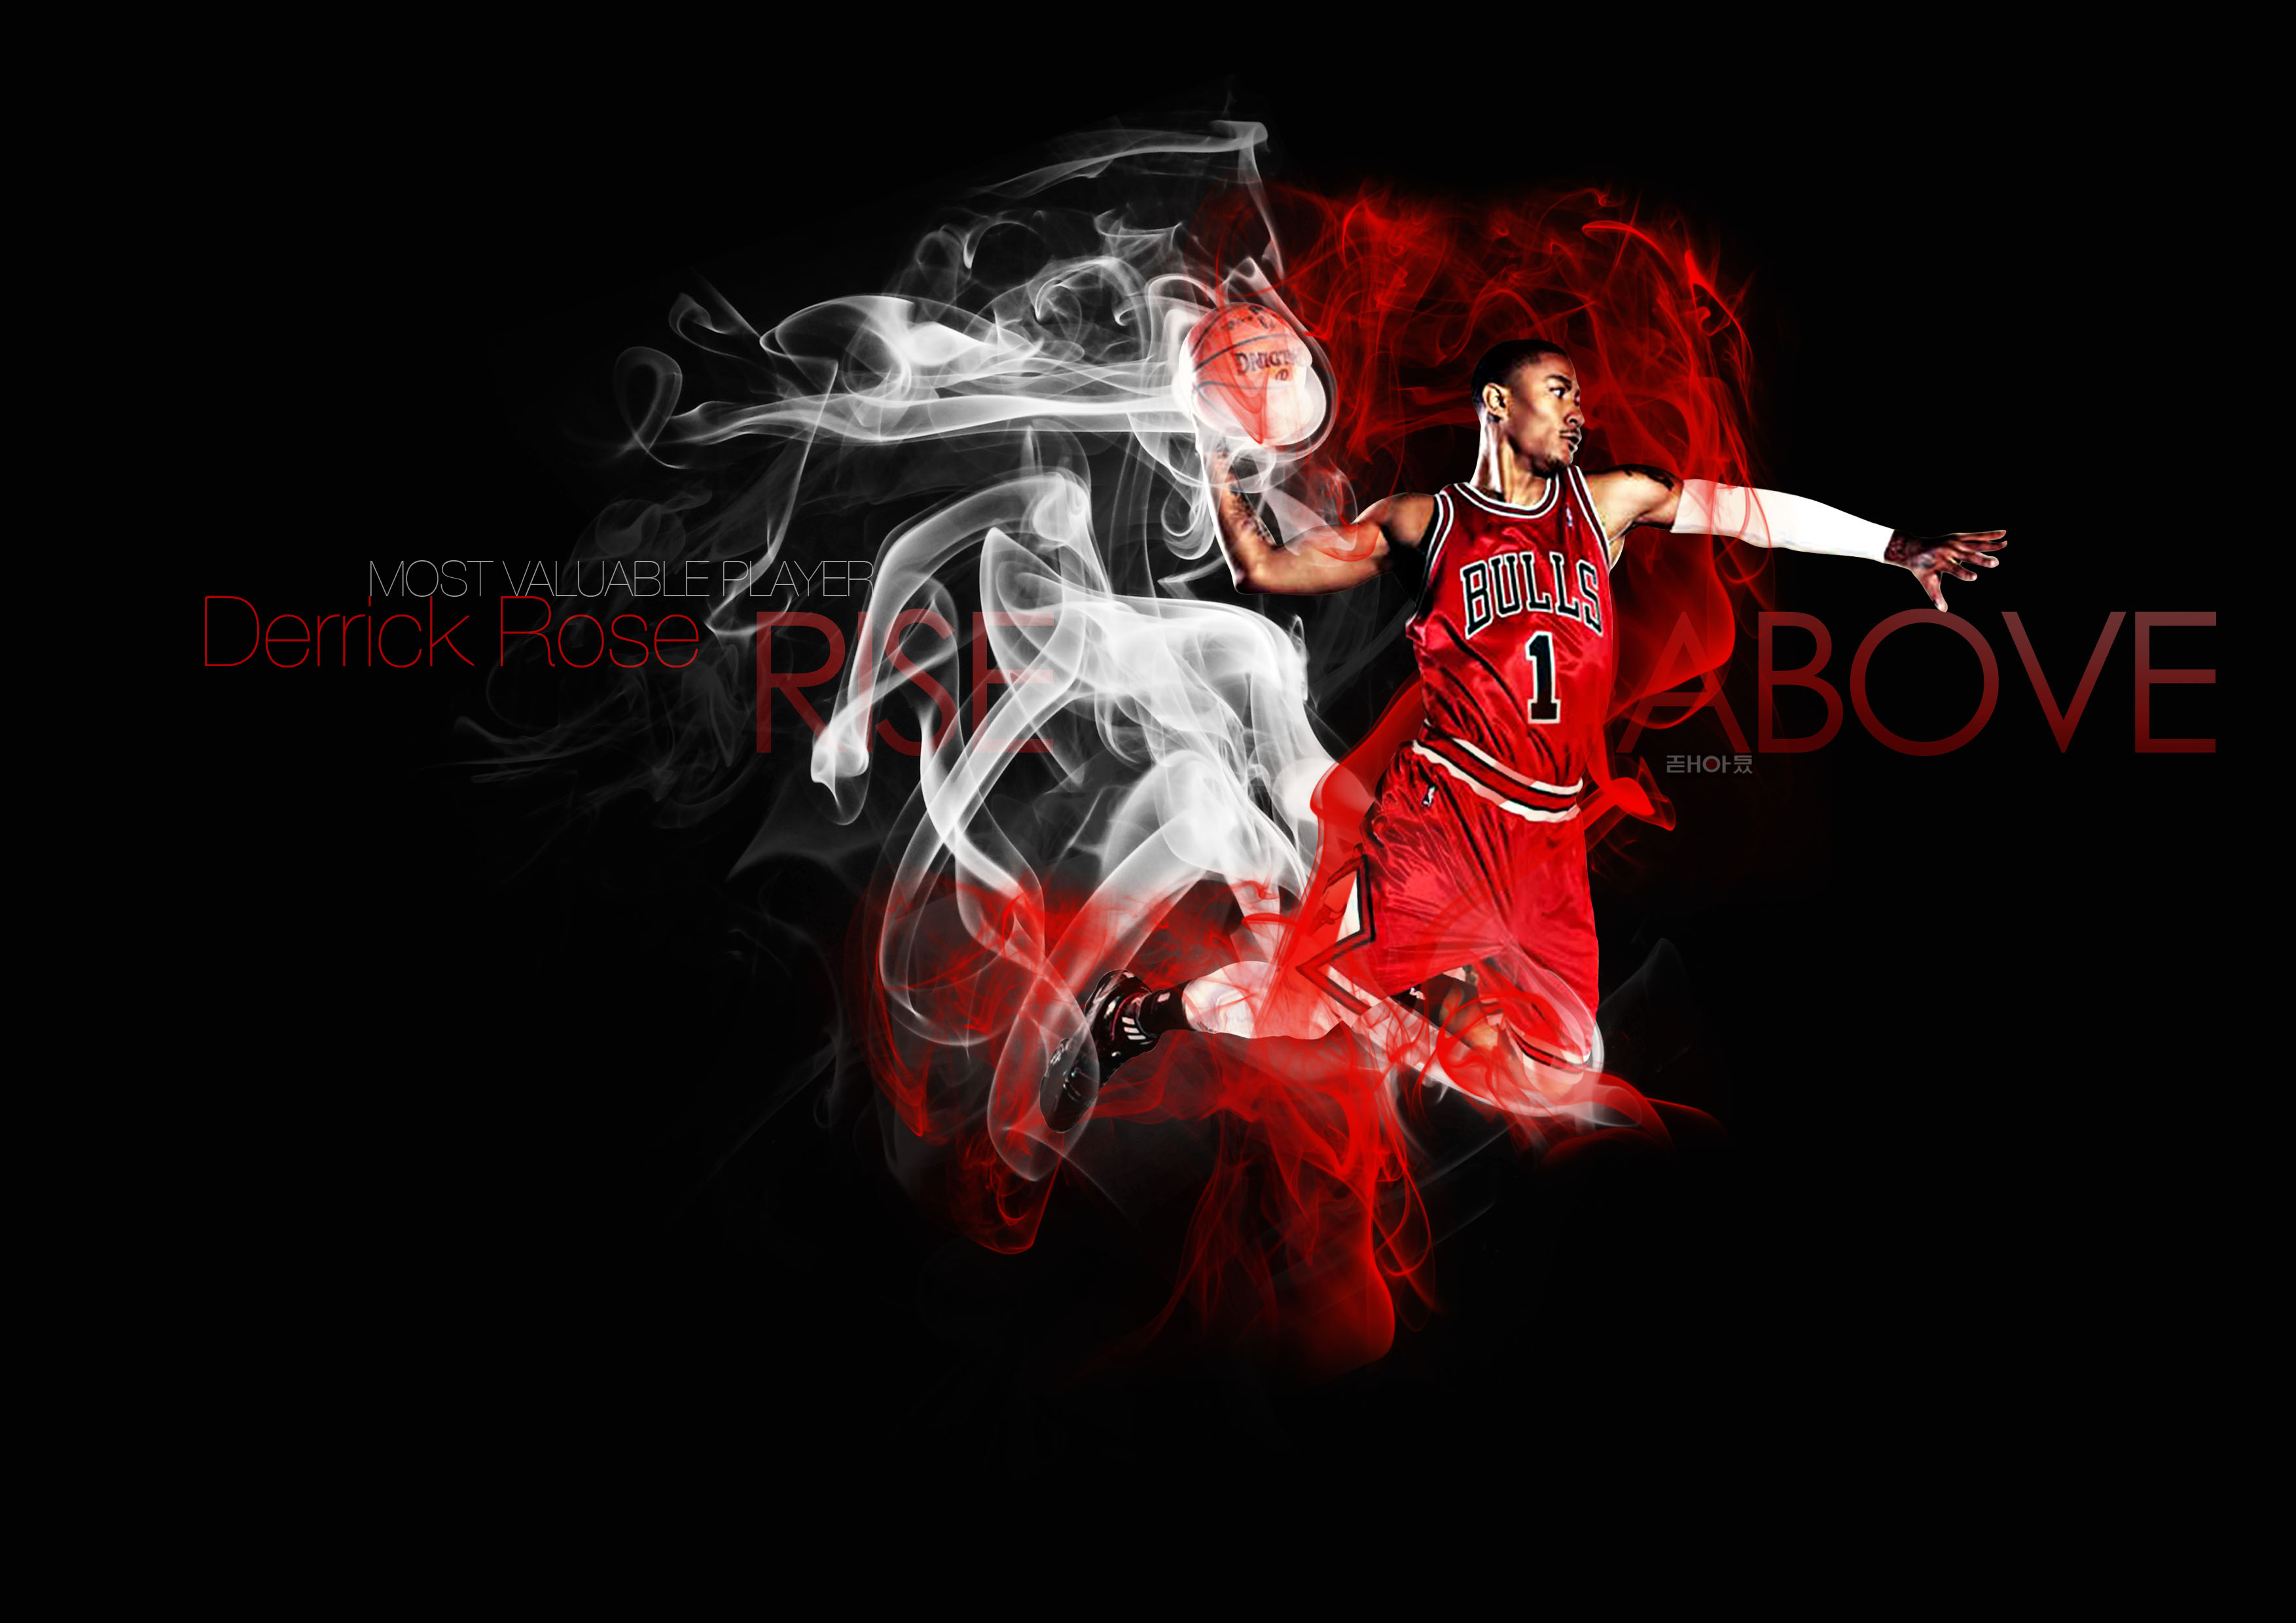 sportsgeekerycom3487the ultimate derrick rose wallpaper collection 3508x2480